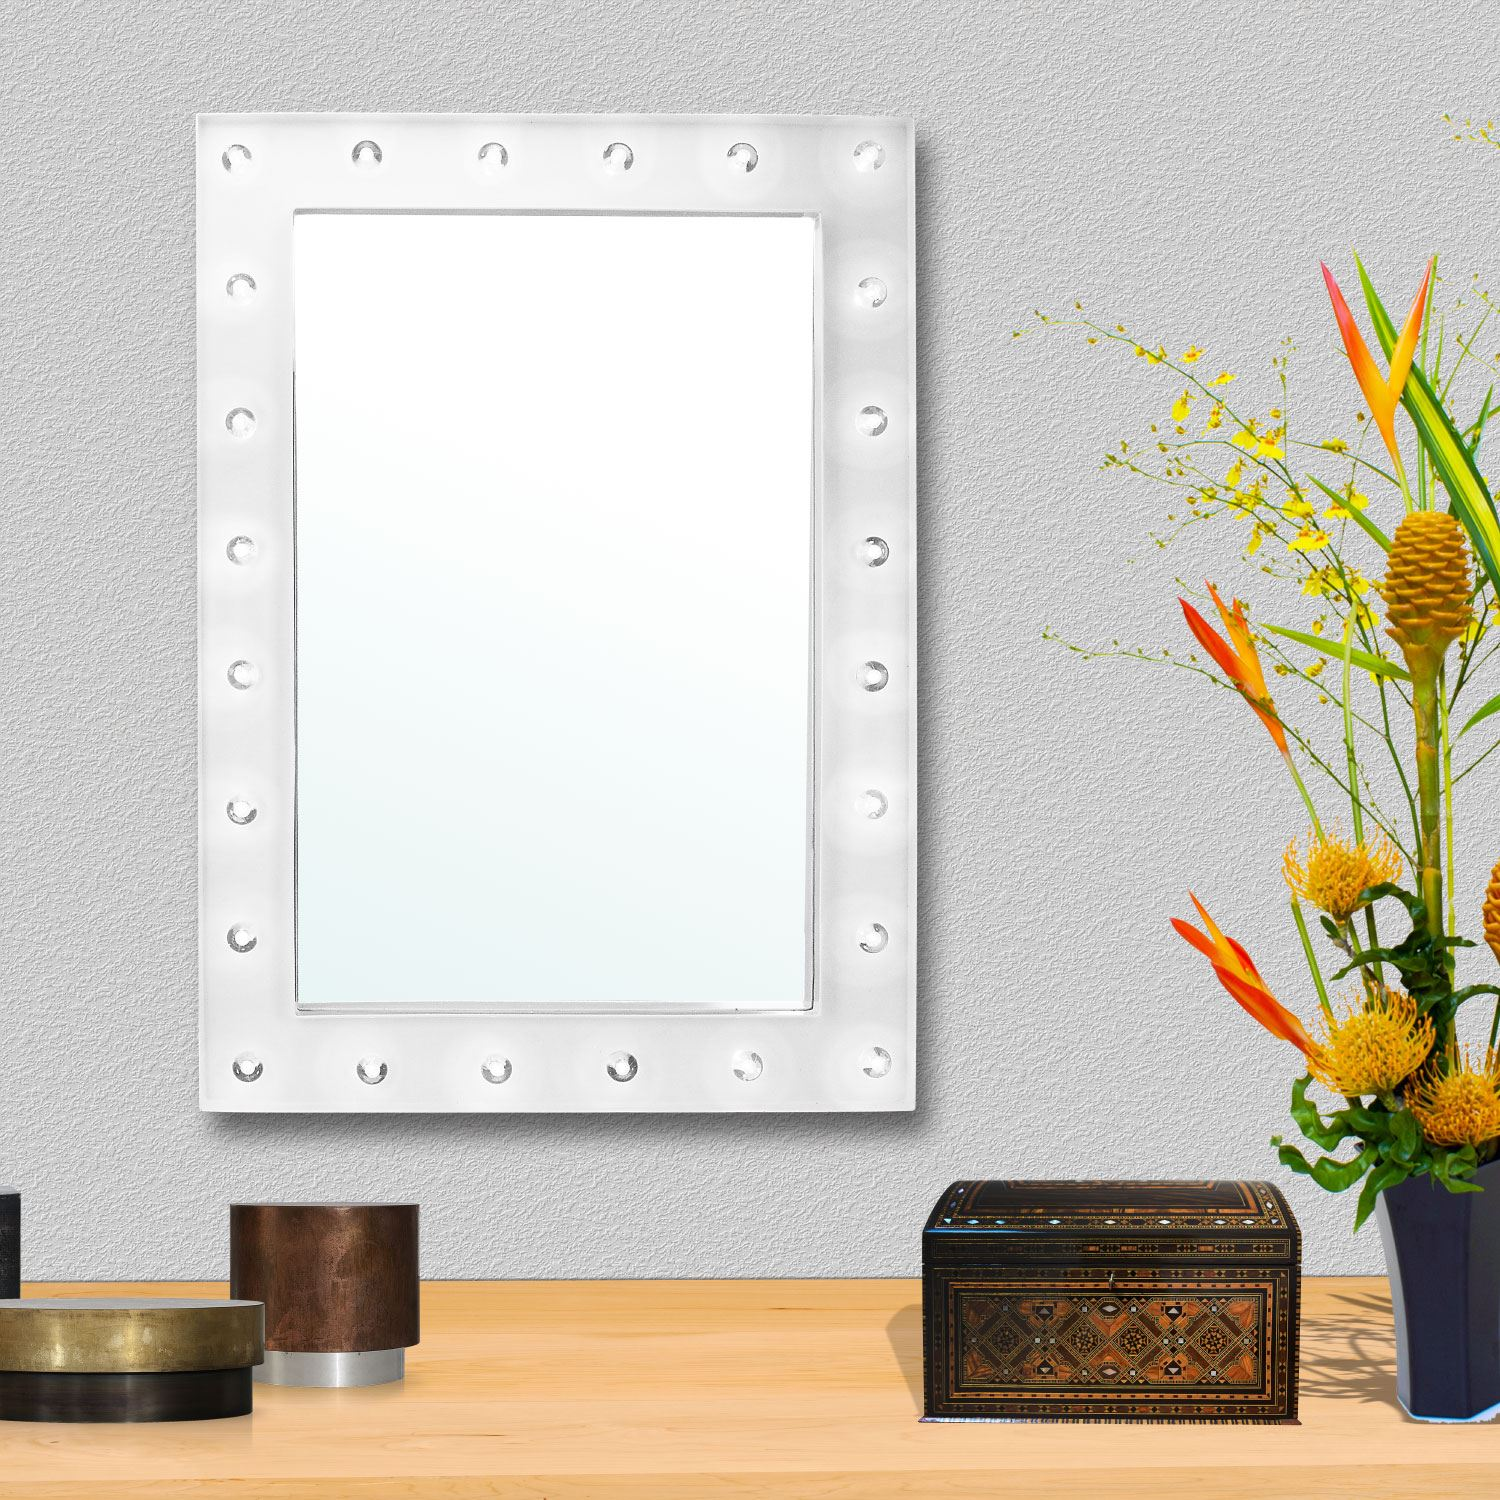 Led Light Wall Mounted Makeup Mirror: Large Vanity Mirror With Light Hollywood Makeup Mirror